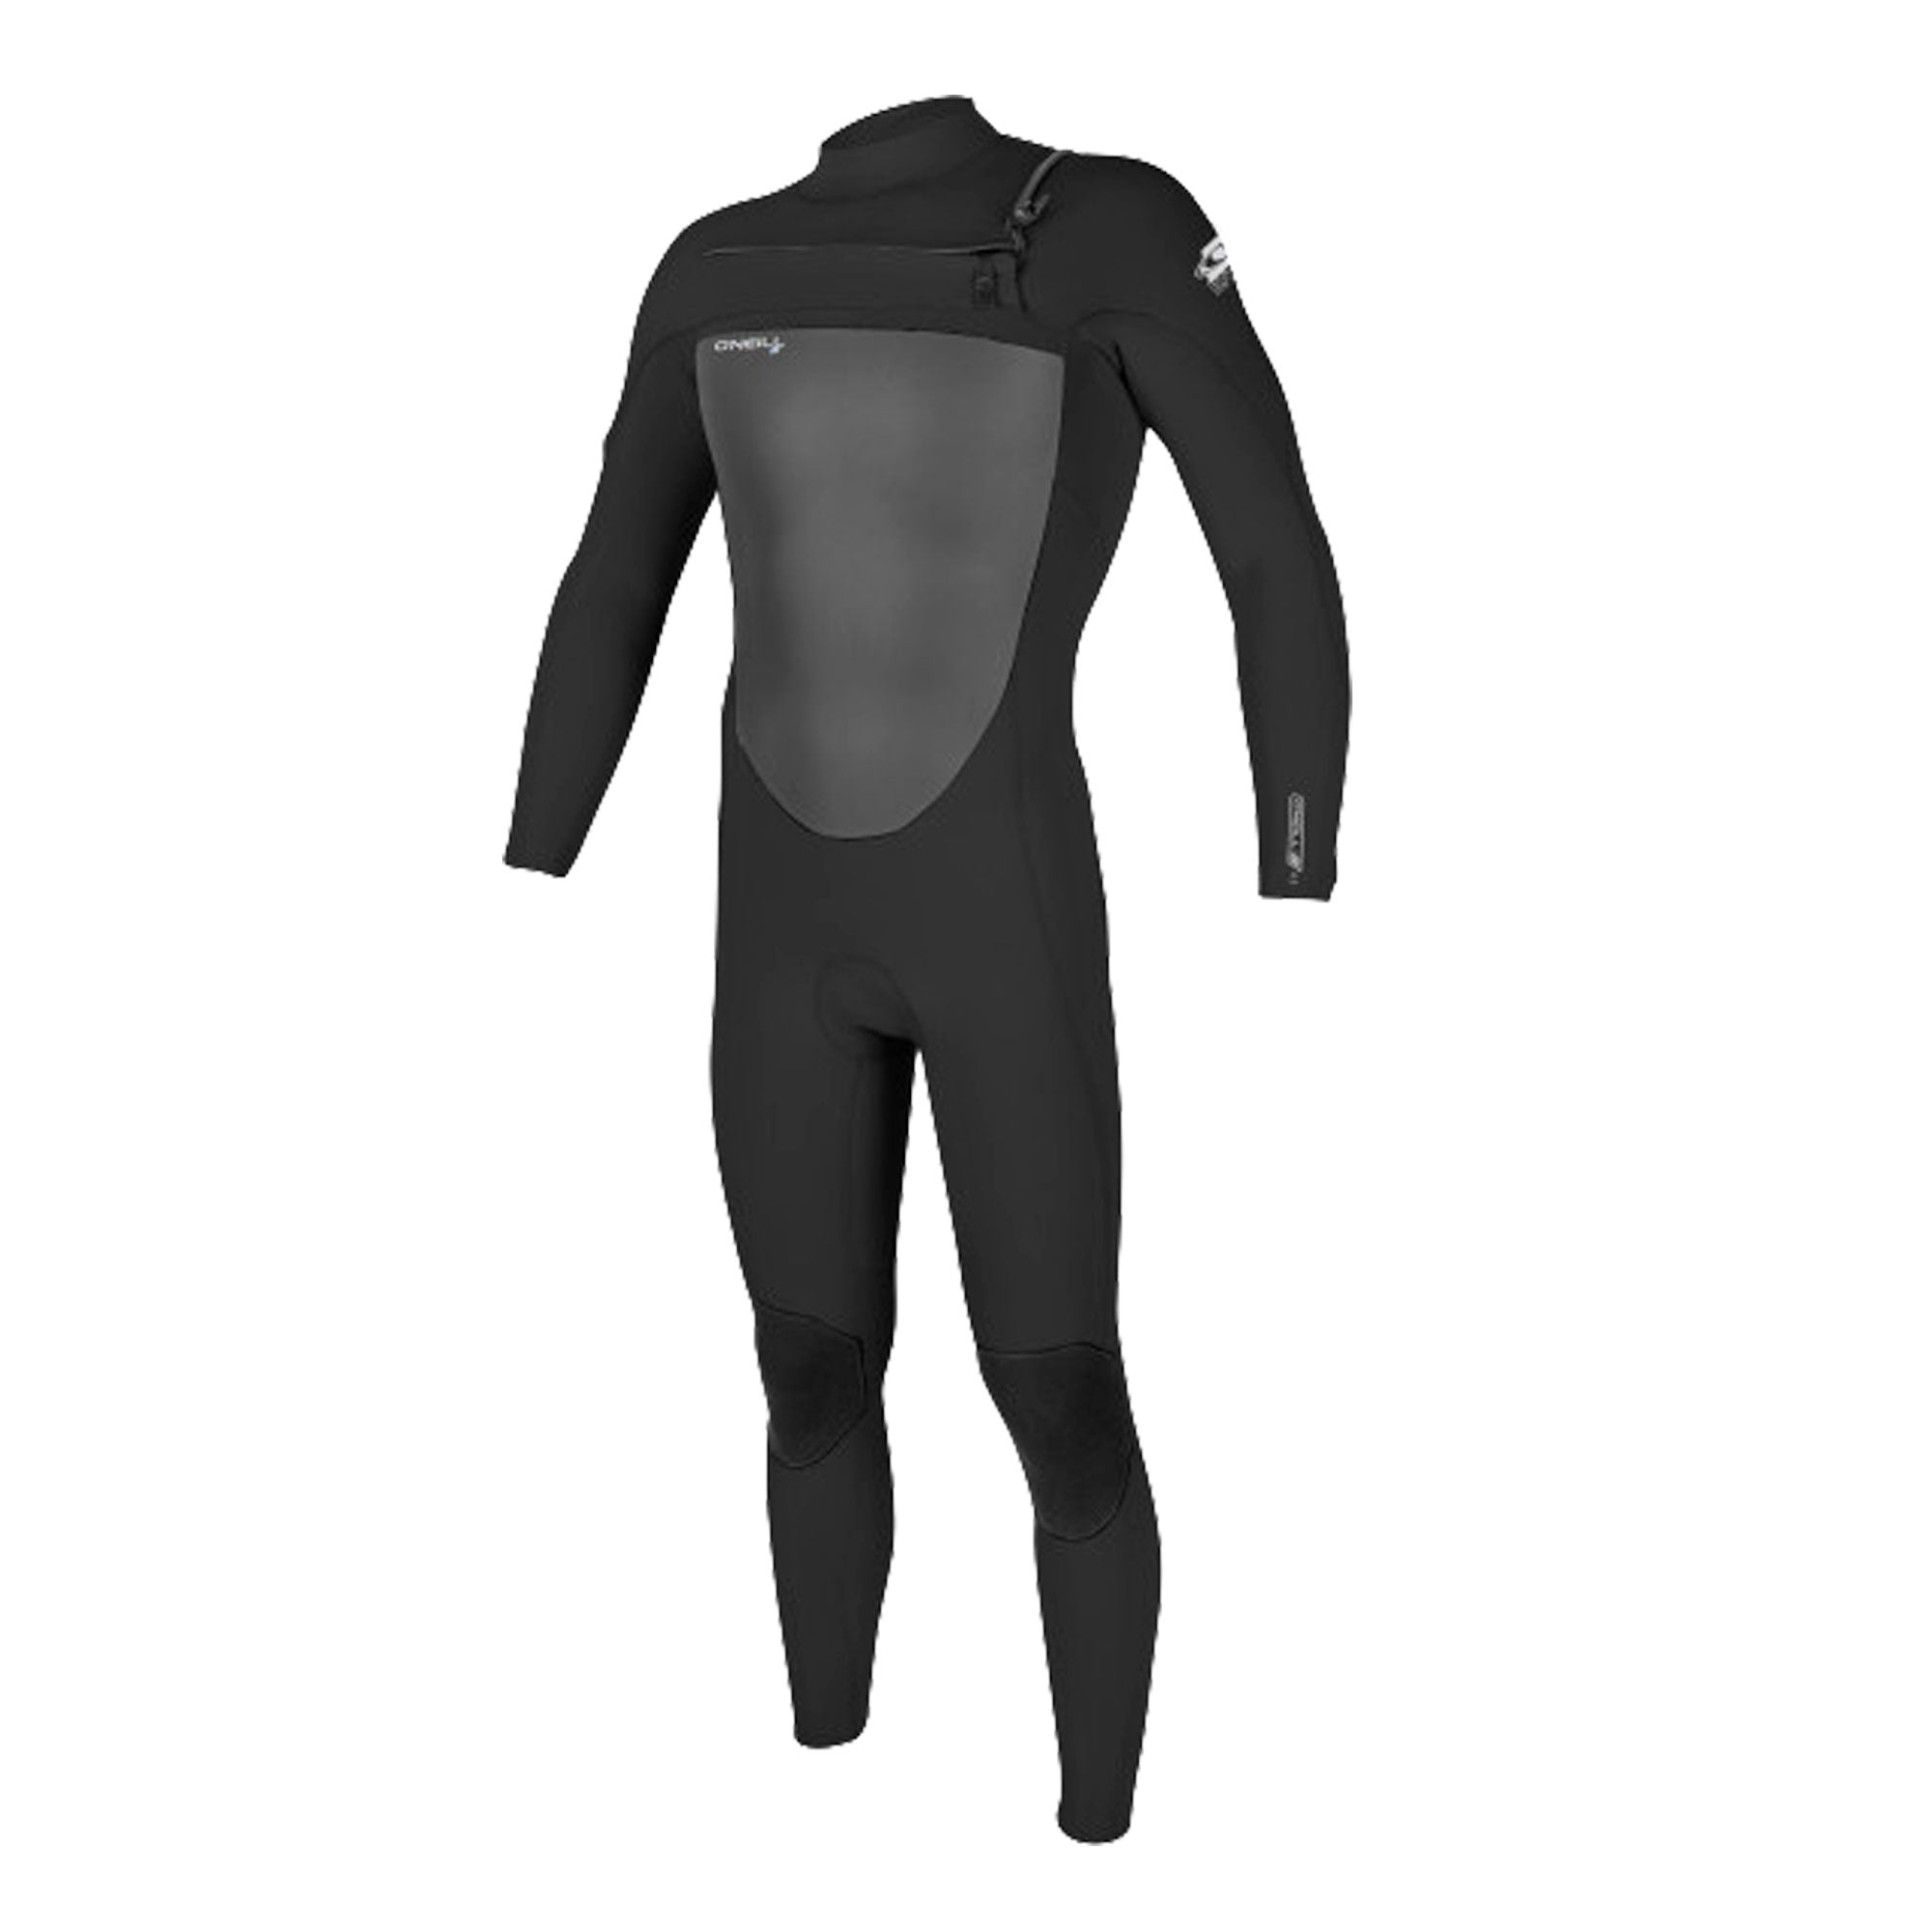 O'Neill Epic 4/3 Men's Chest Zip Wetsuit